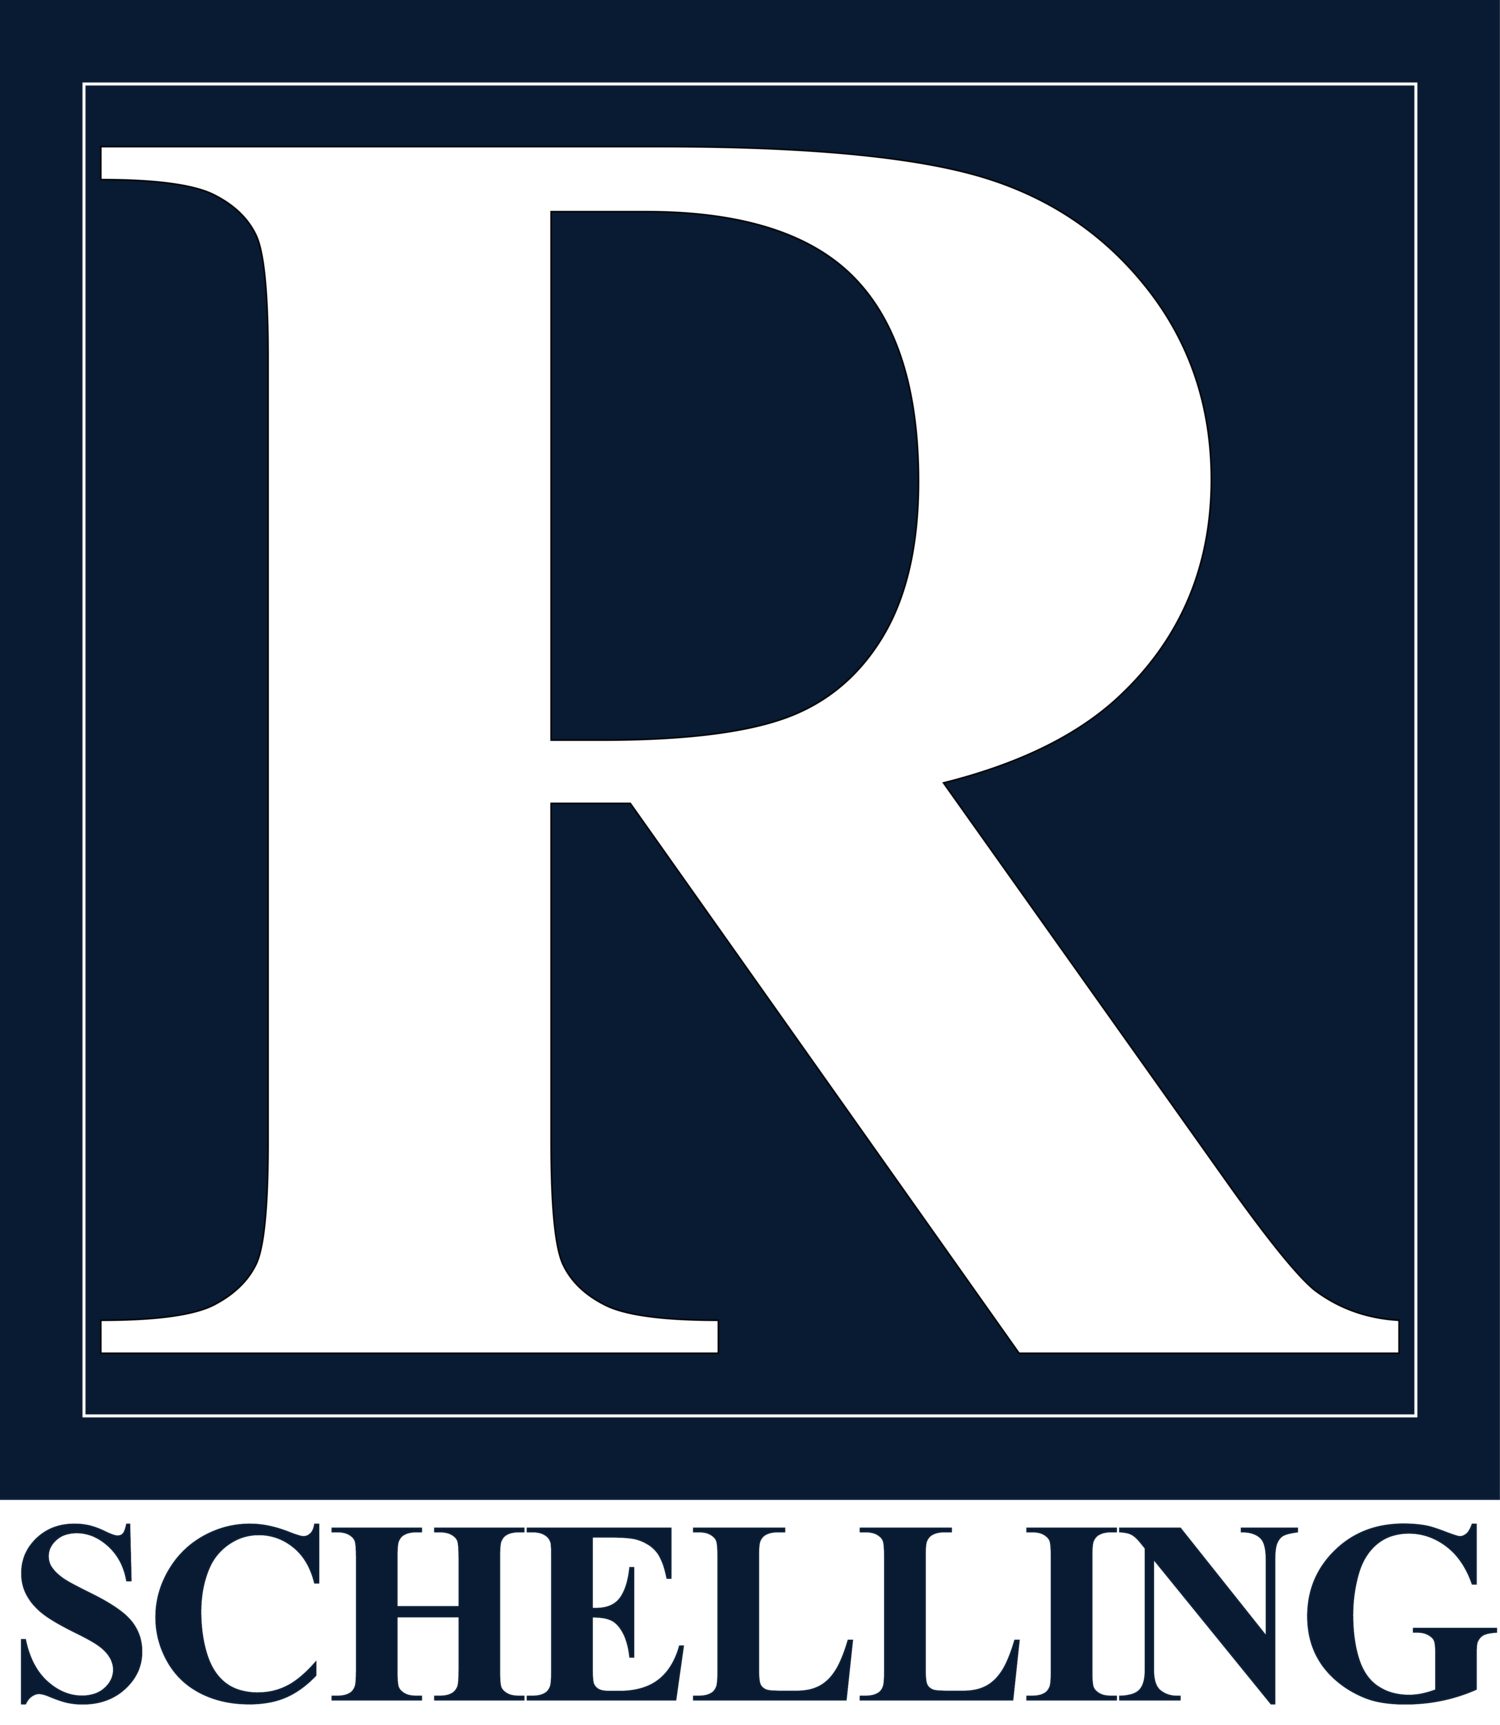 Rob Schelling - Attorney at Law